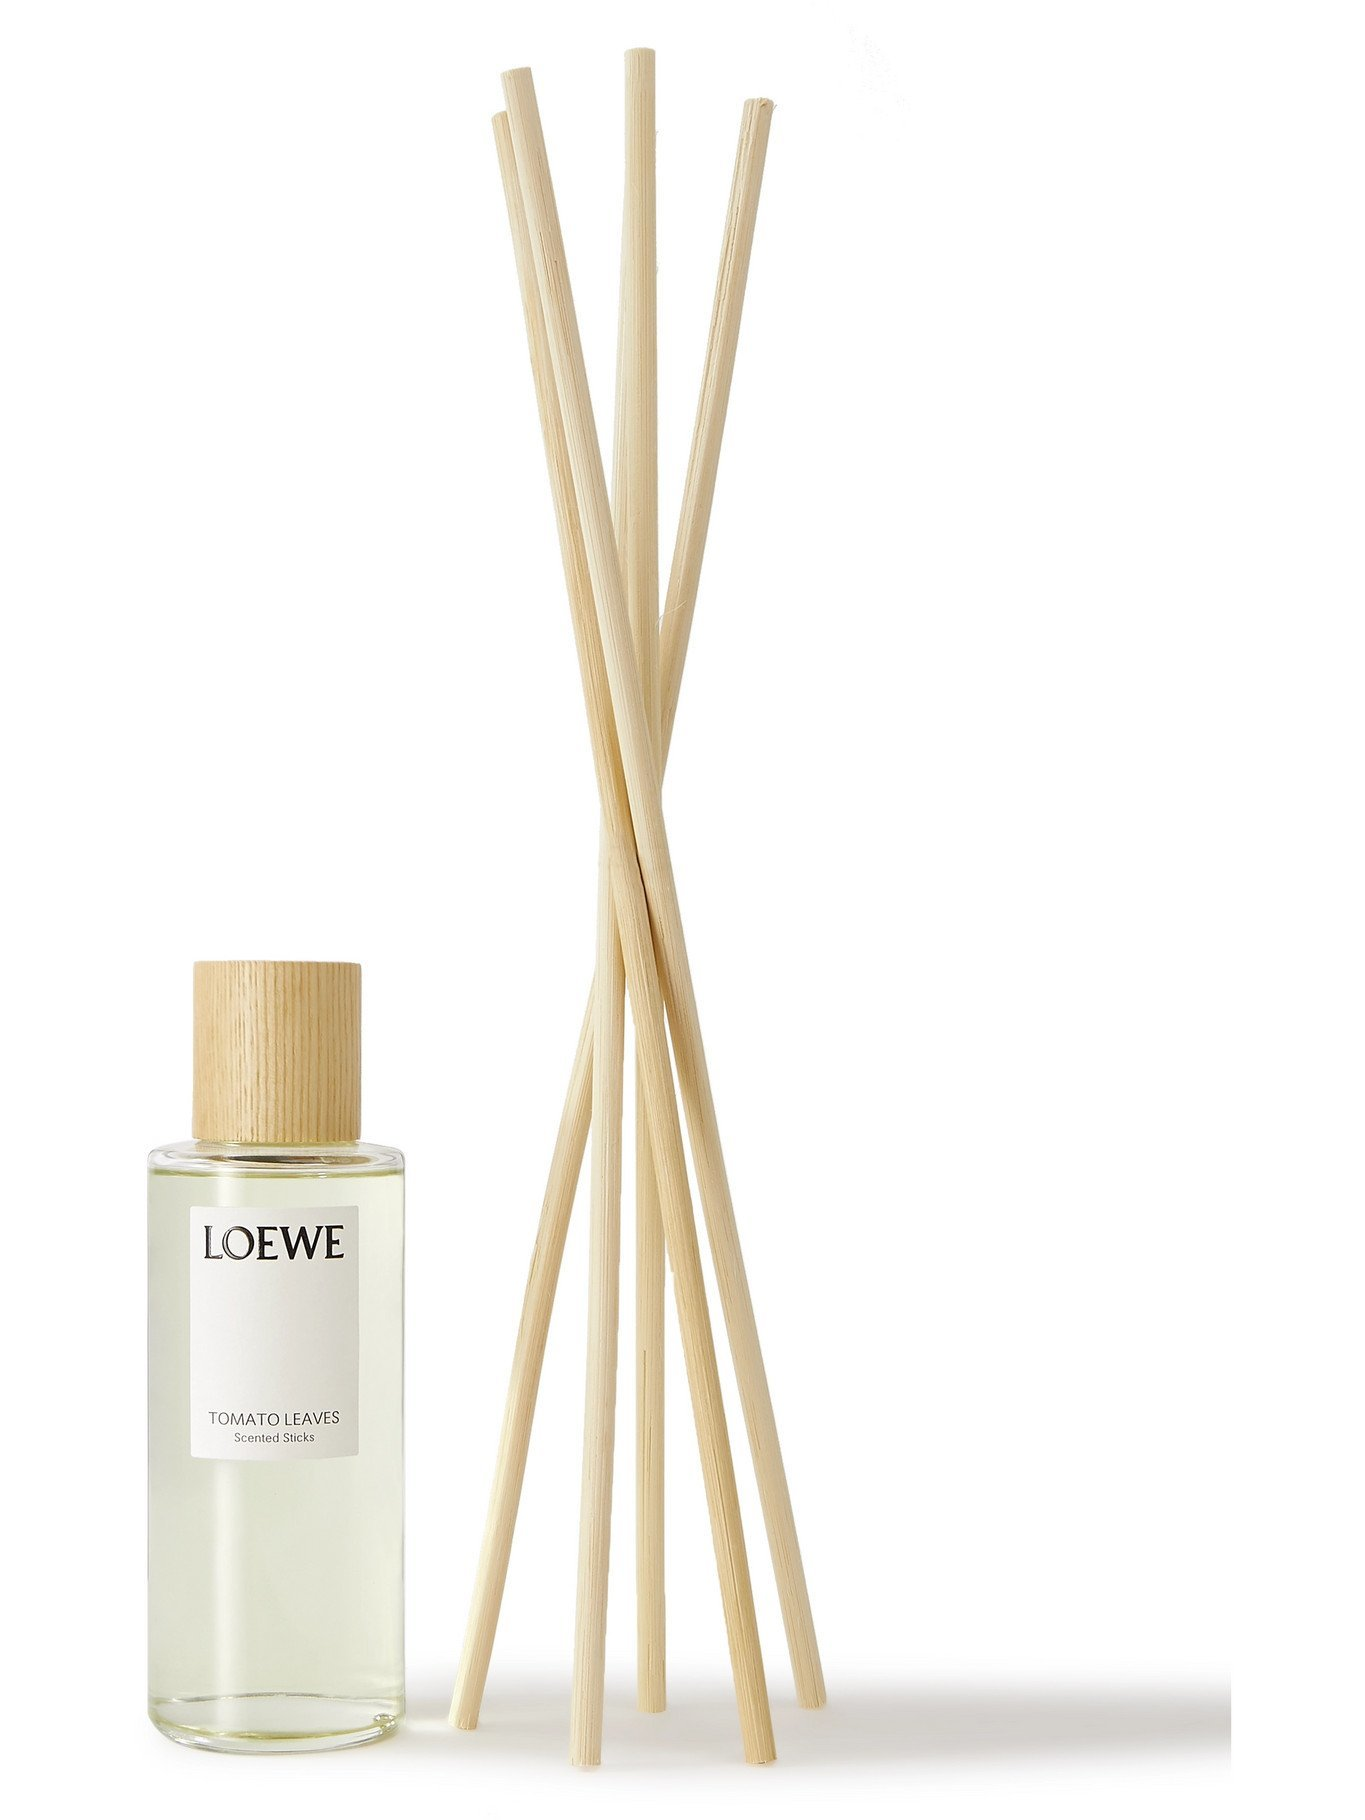 Photo: LOEWE HOME SCENTS - Tomato Leaves Scent Diffuser, 245ml